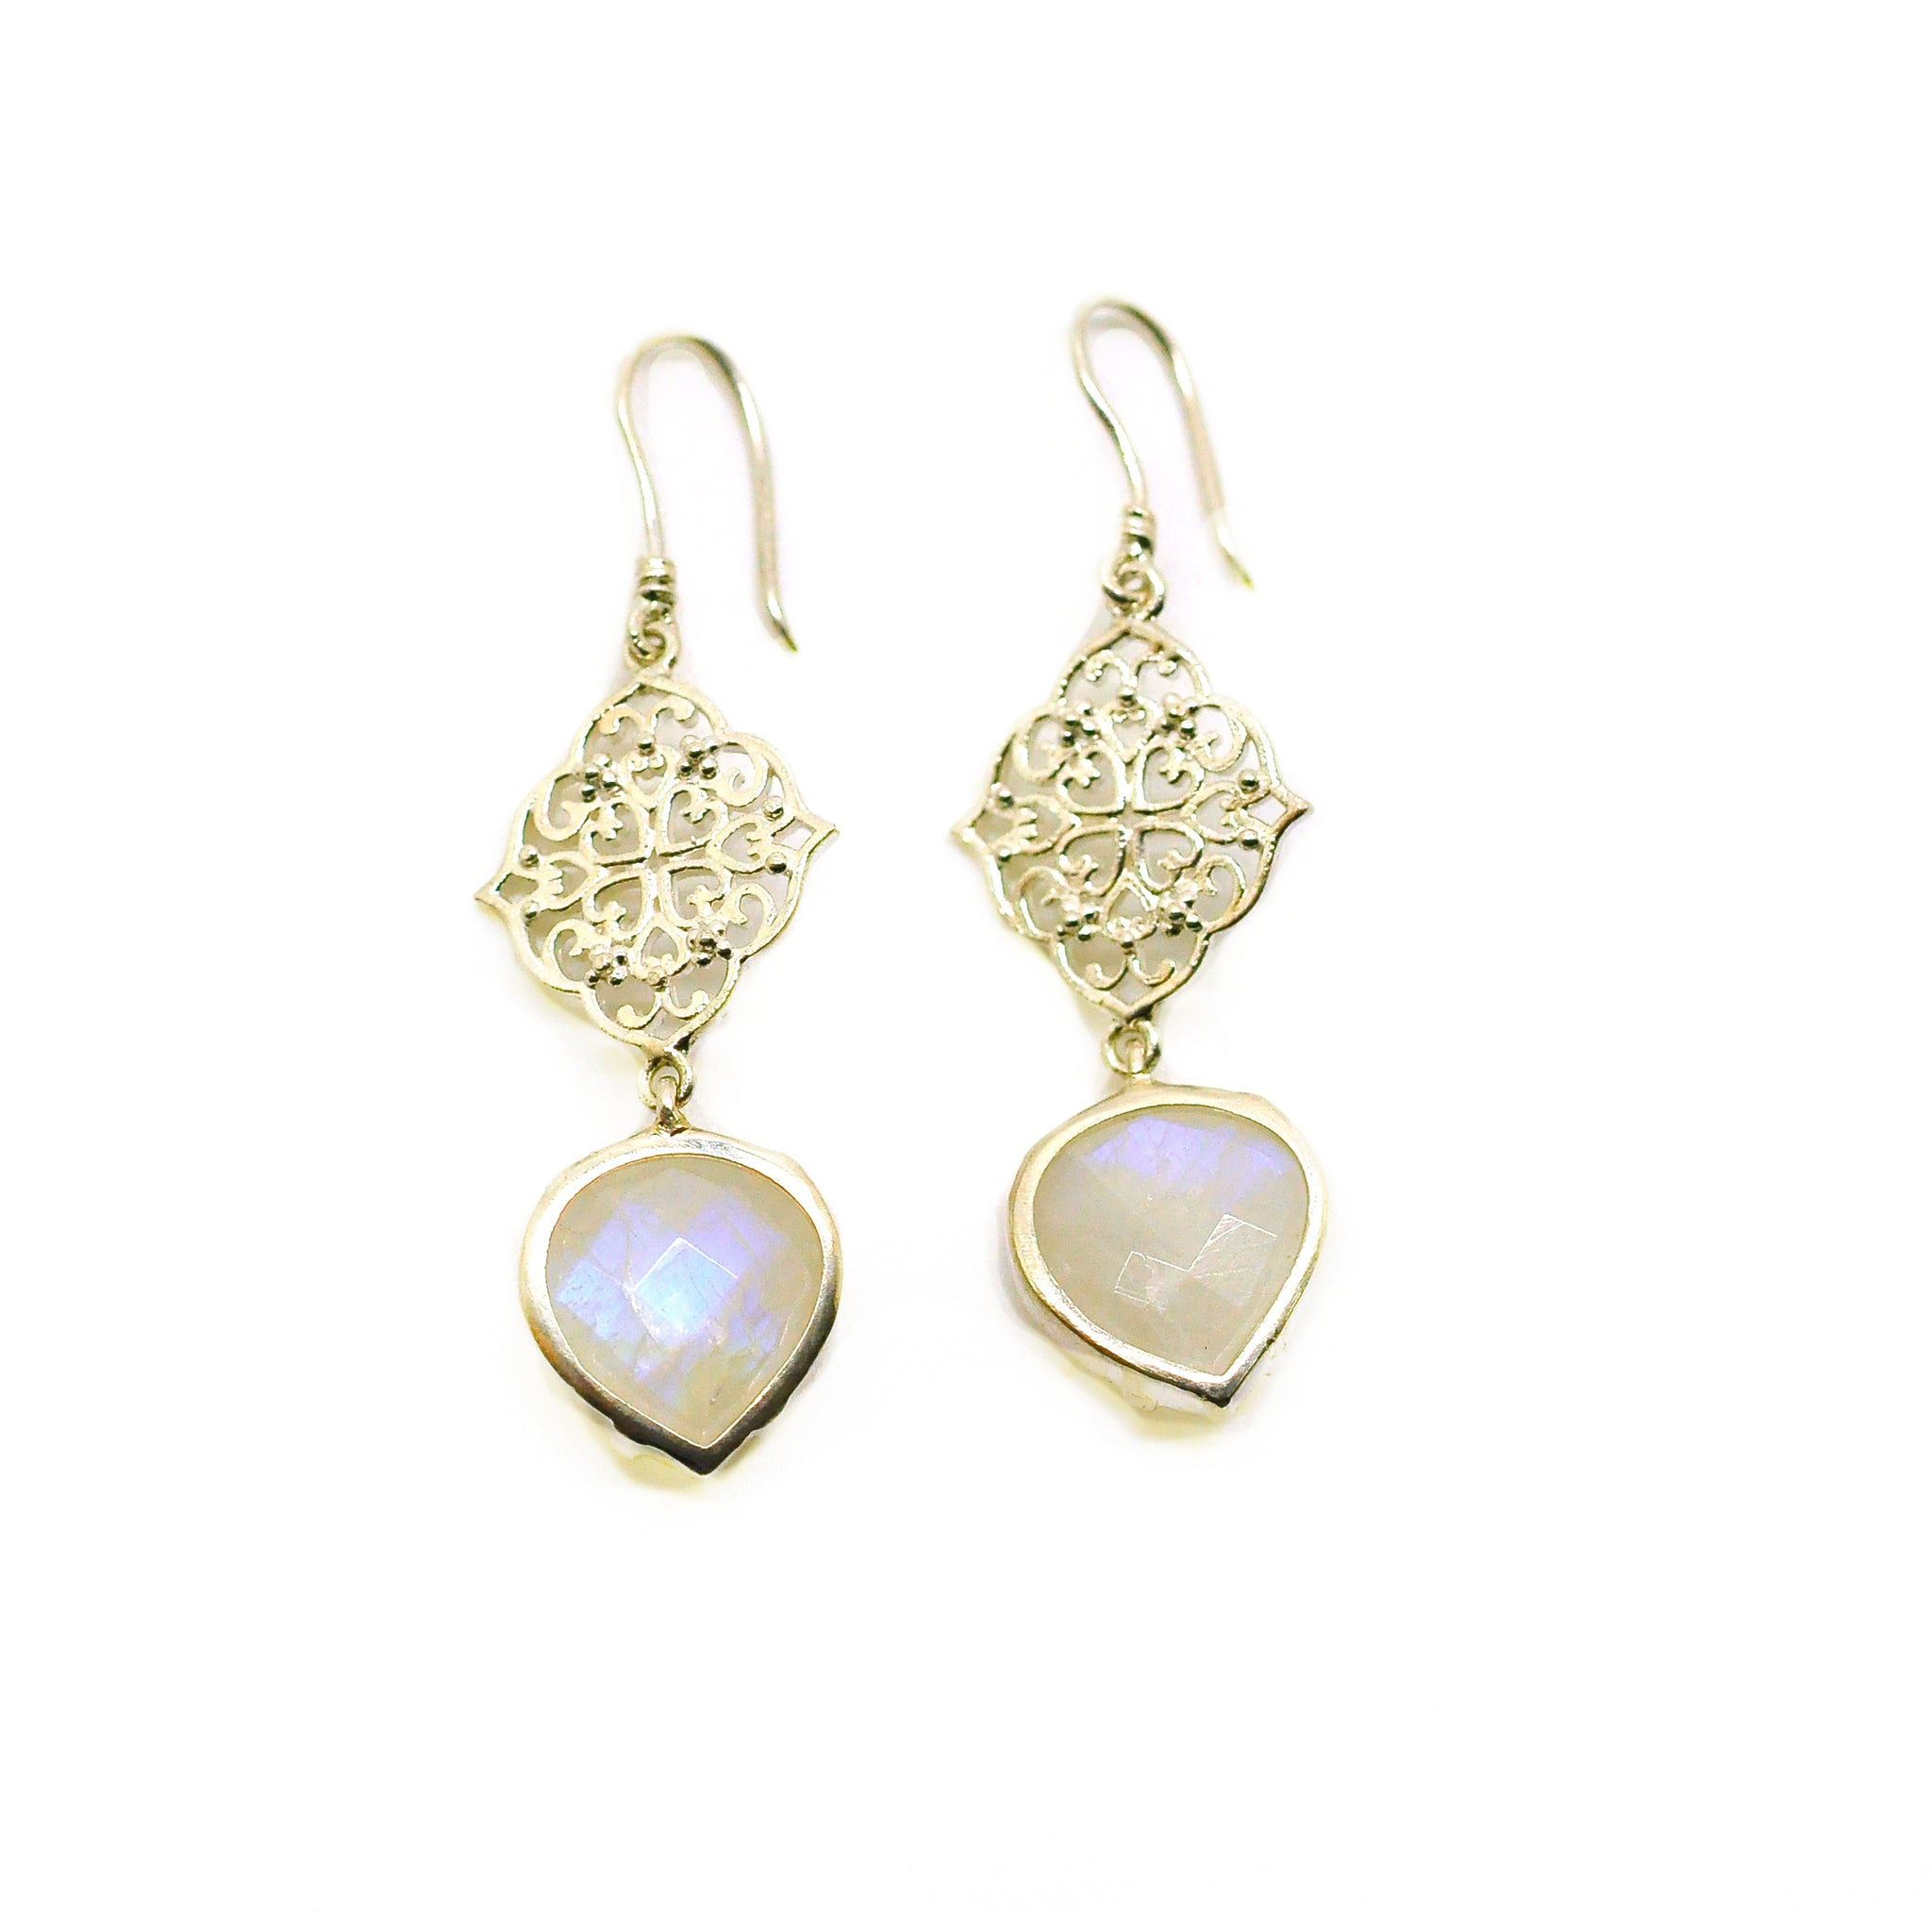 SOLD - NEW Victorian filigree moonstone